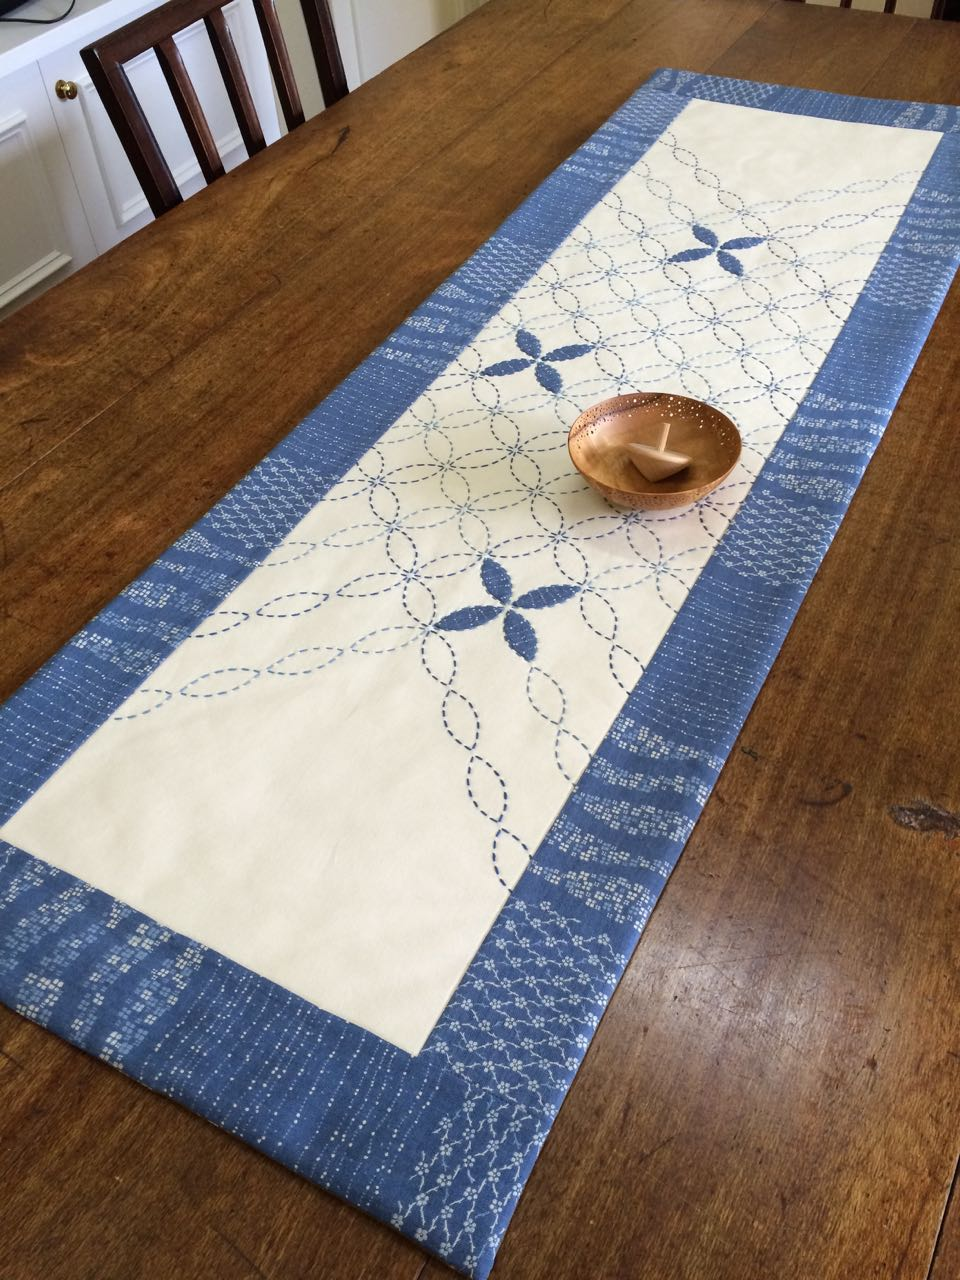 New Sashiko Table Runner Bordered With Takumi Fabric